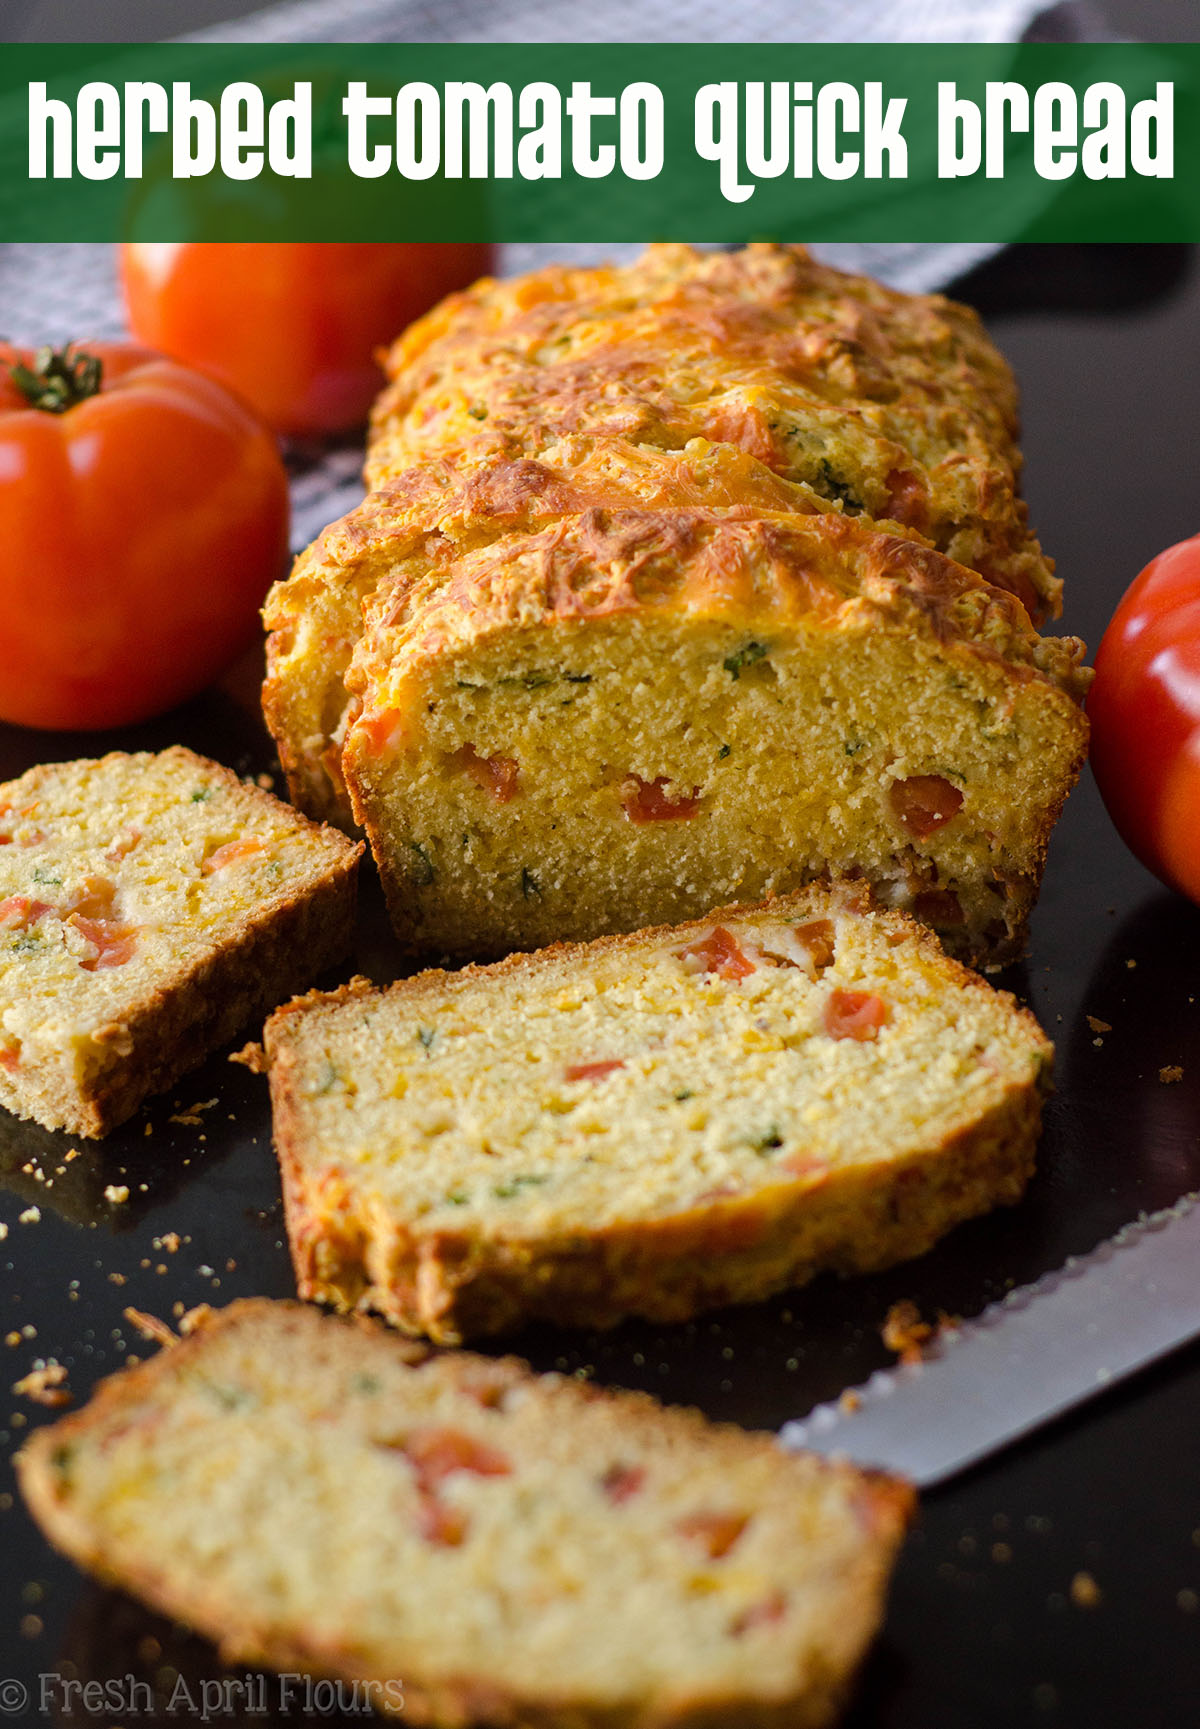 Herbed Tomato Quick Bread: A savory bread that comes together quickly using fresh tomatoes and basil. Perfect for using summer produce!